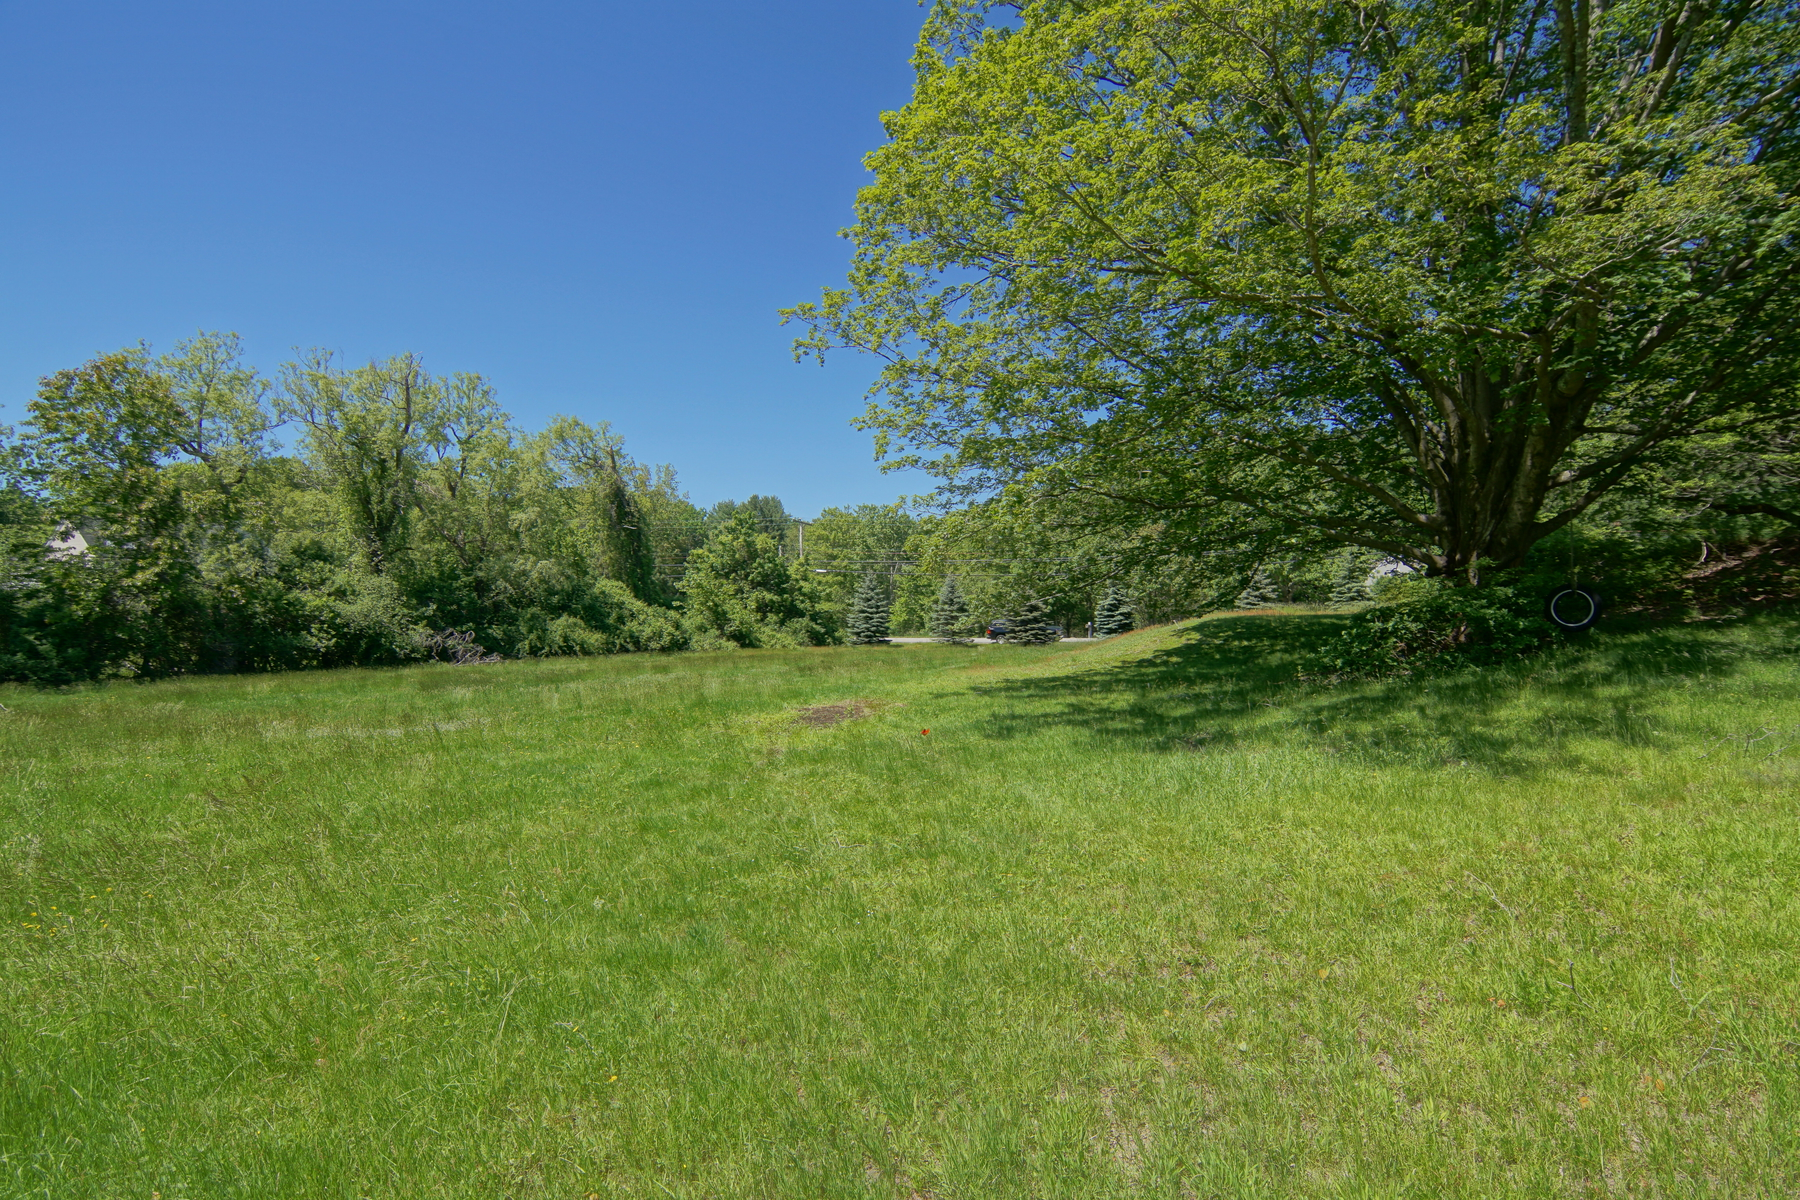 Земля для того Продажа на Ancient North Hampton Pasture Land For Sale 122 Atlantic Avenue, North Hampton, Нью-Гэмпшир, 03862 Соединенные Штаты